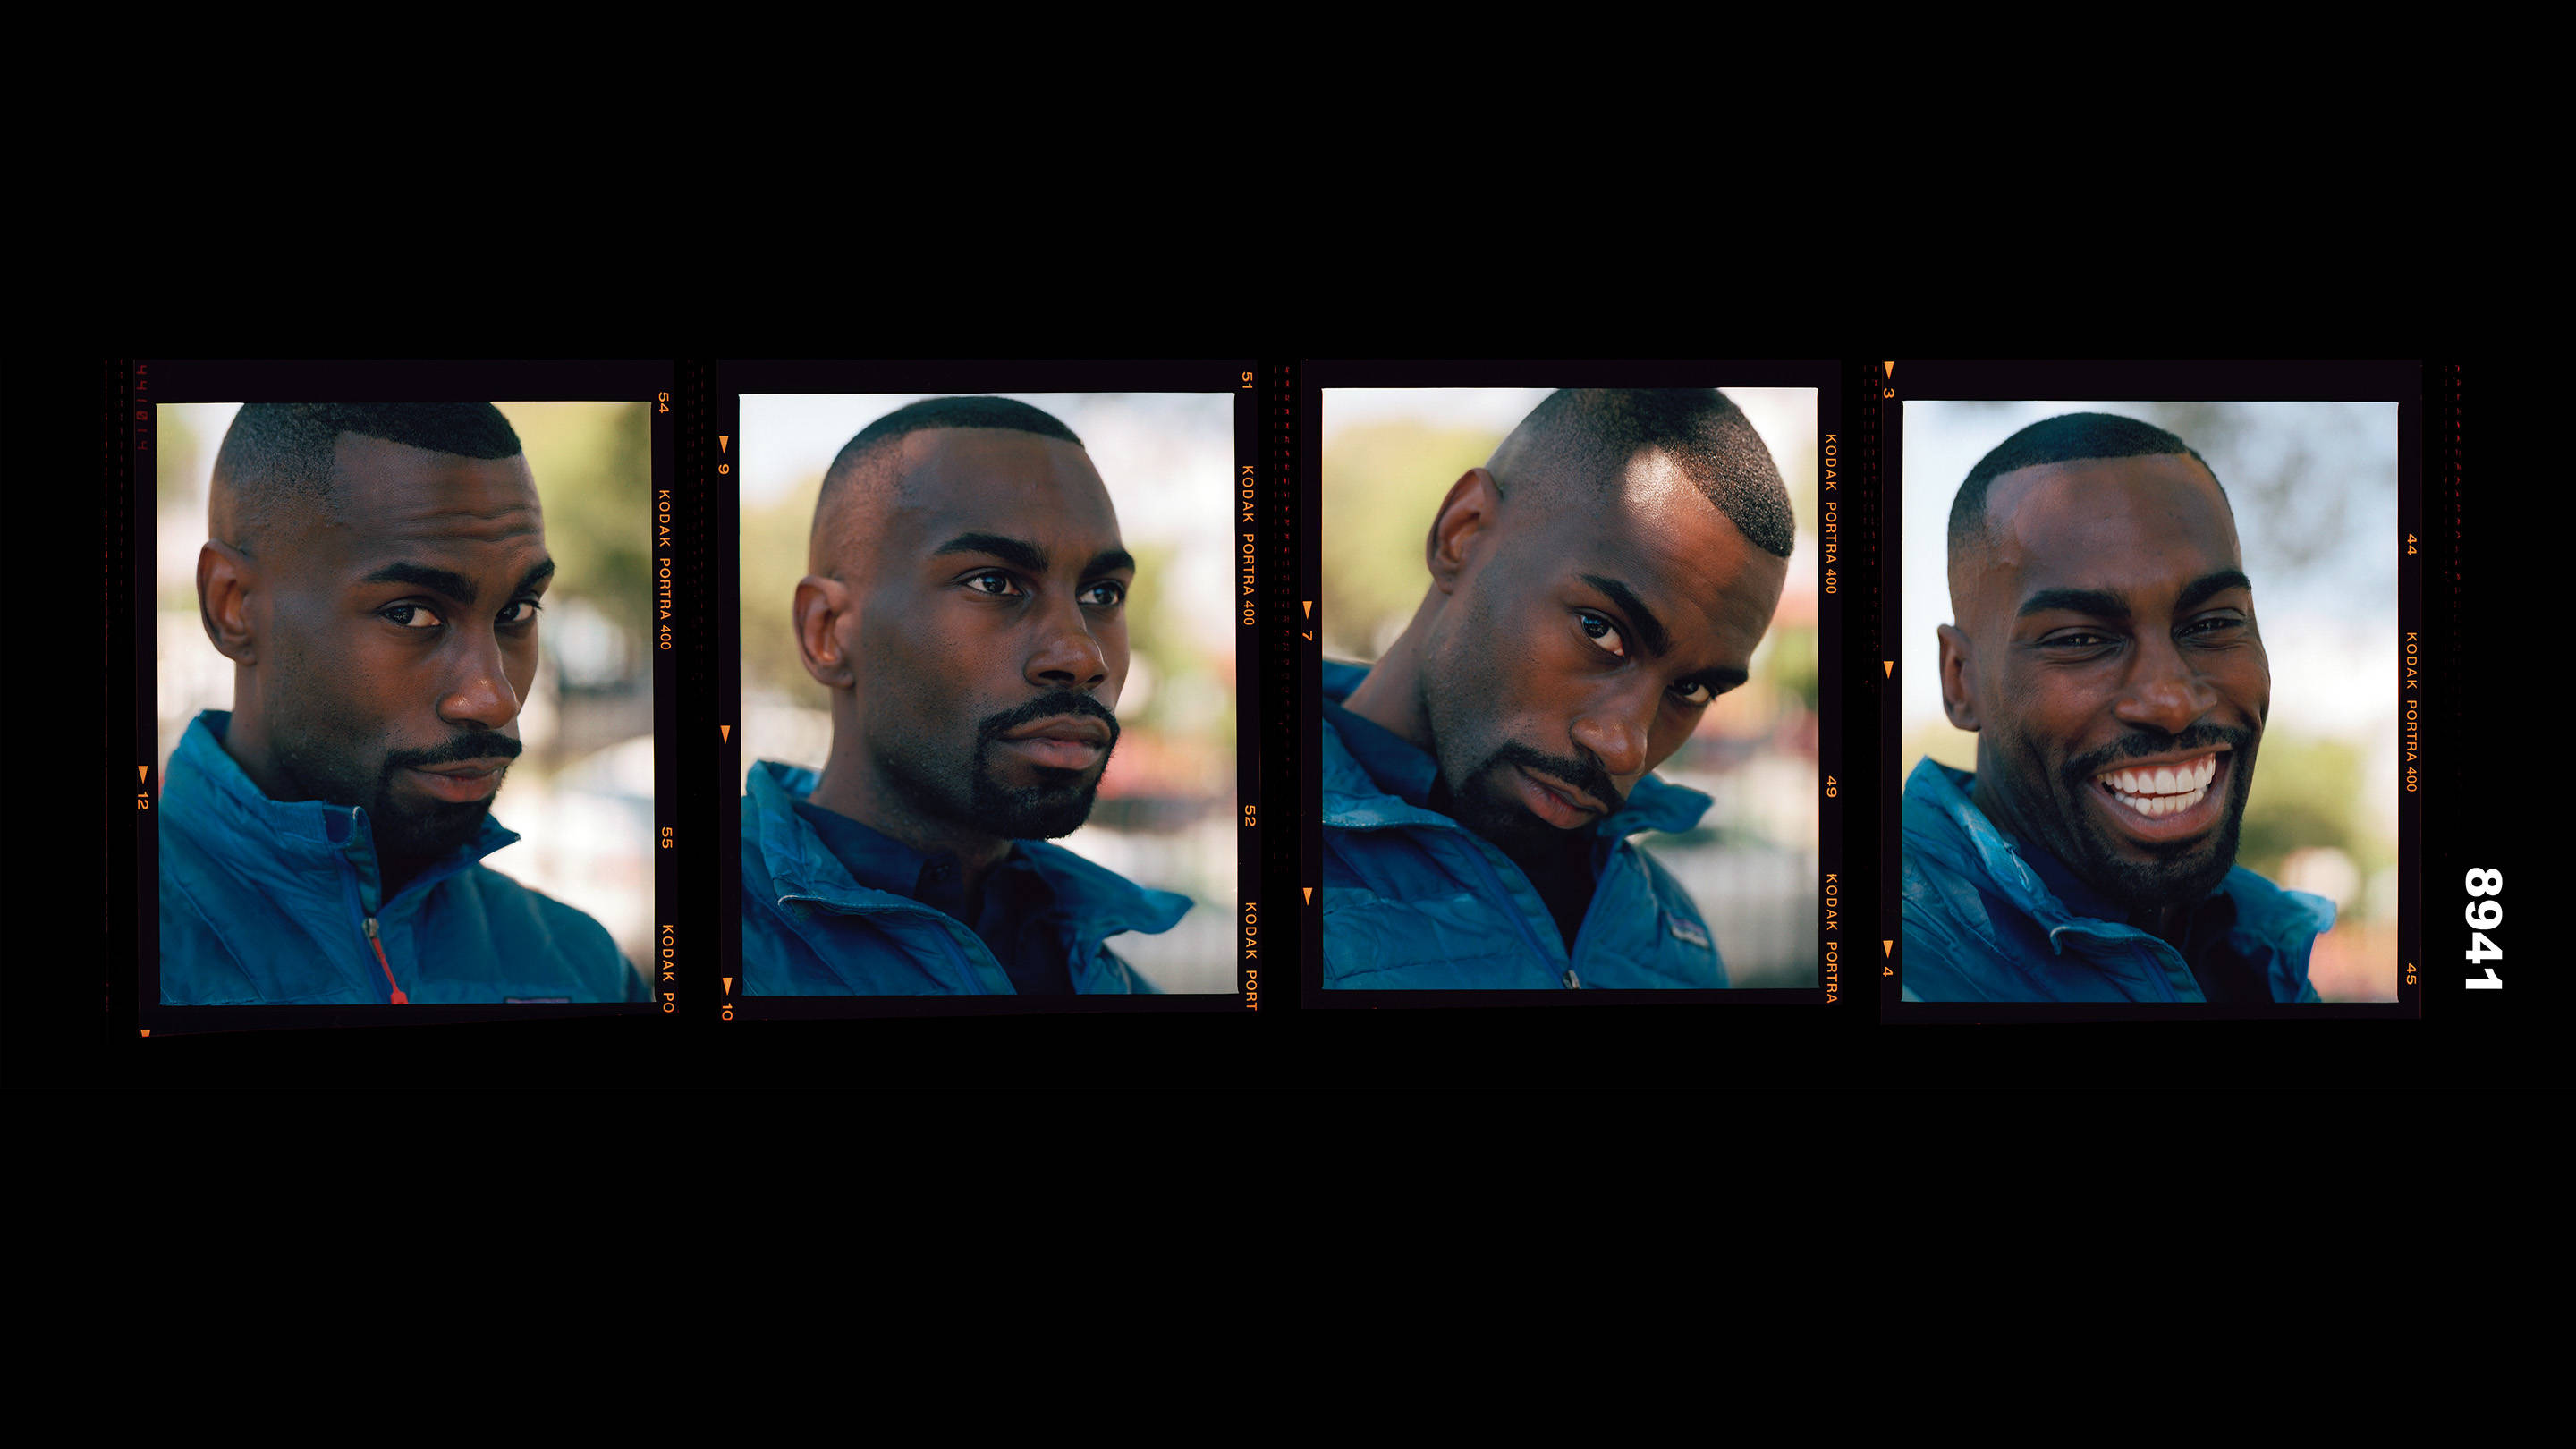 DeRay Mckesson's 'On the Other Side of Freedom: The Case For Hope' for Playboy